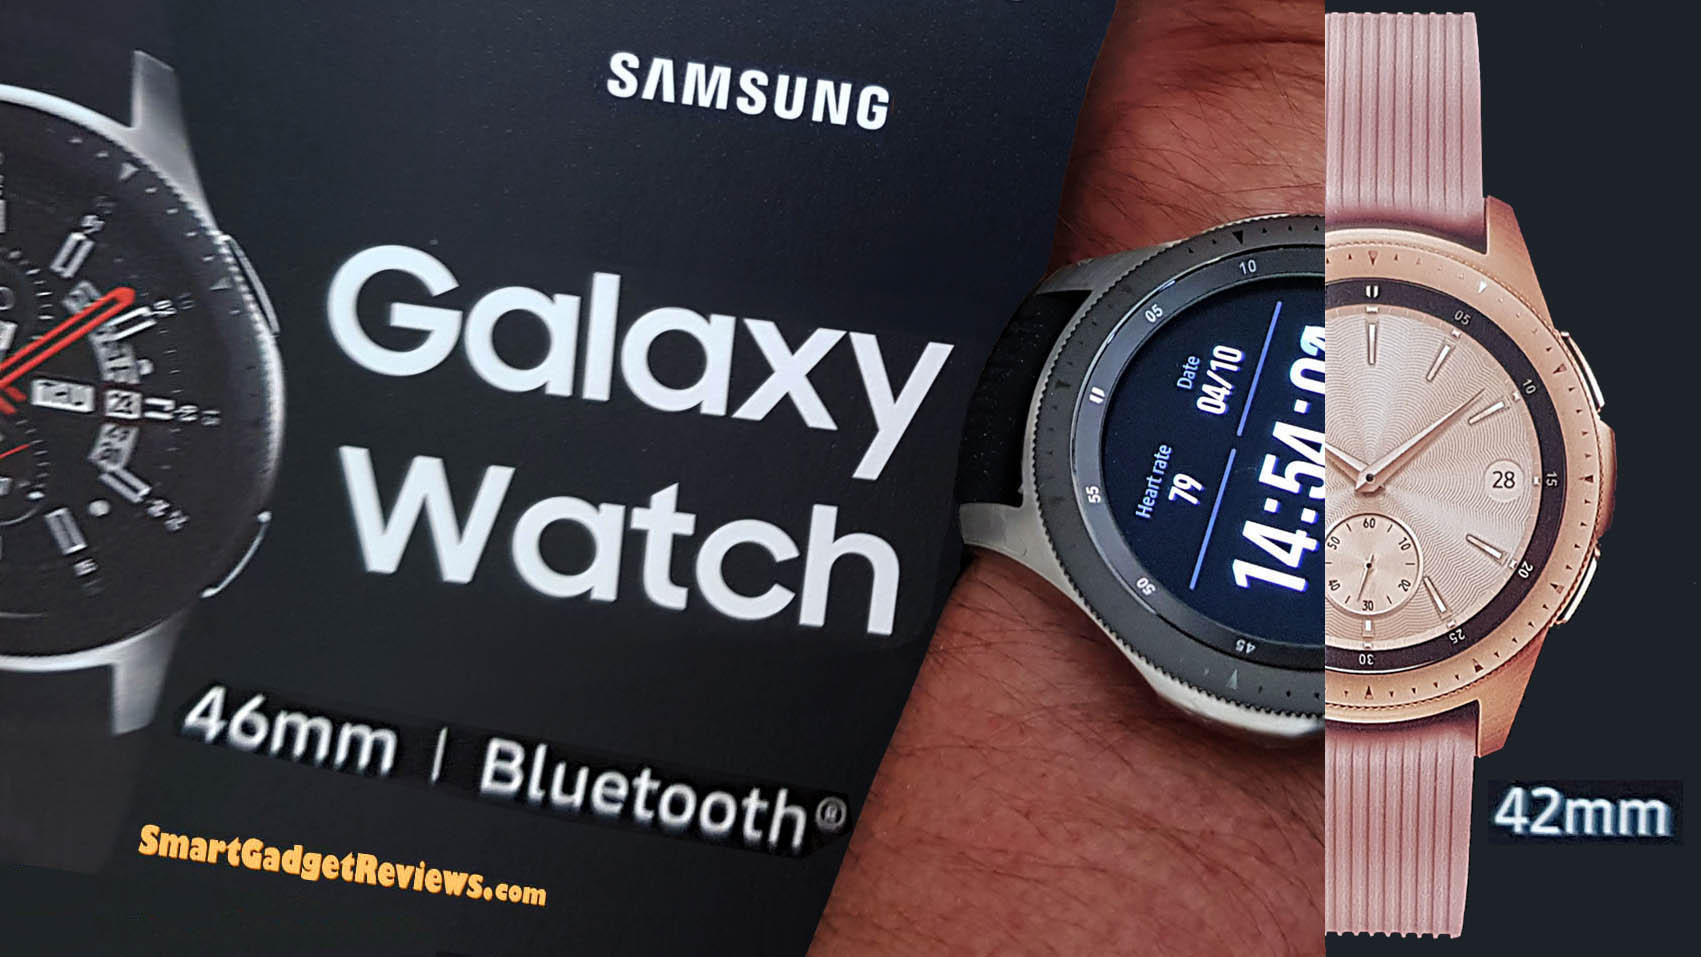 Galaxy smartwatch connect fitness monitor to phone